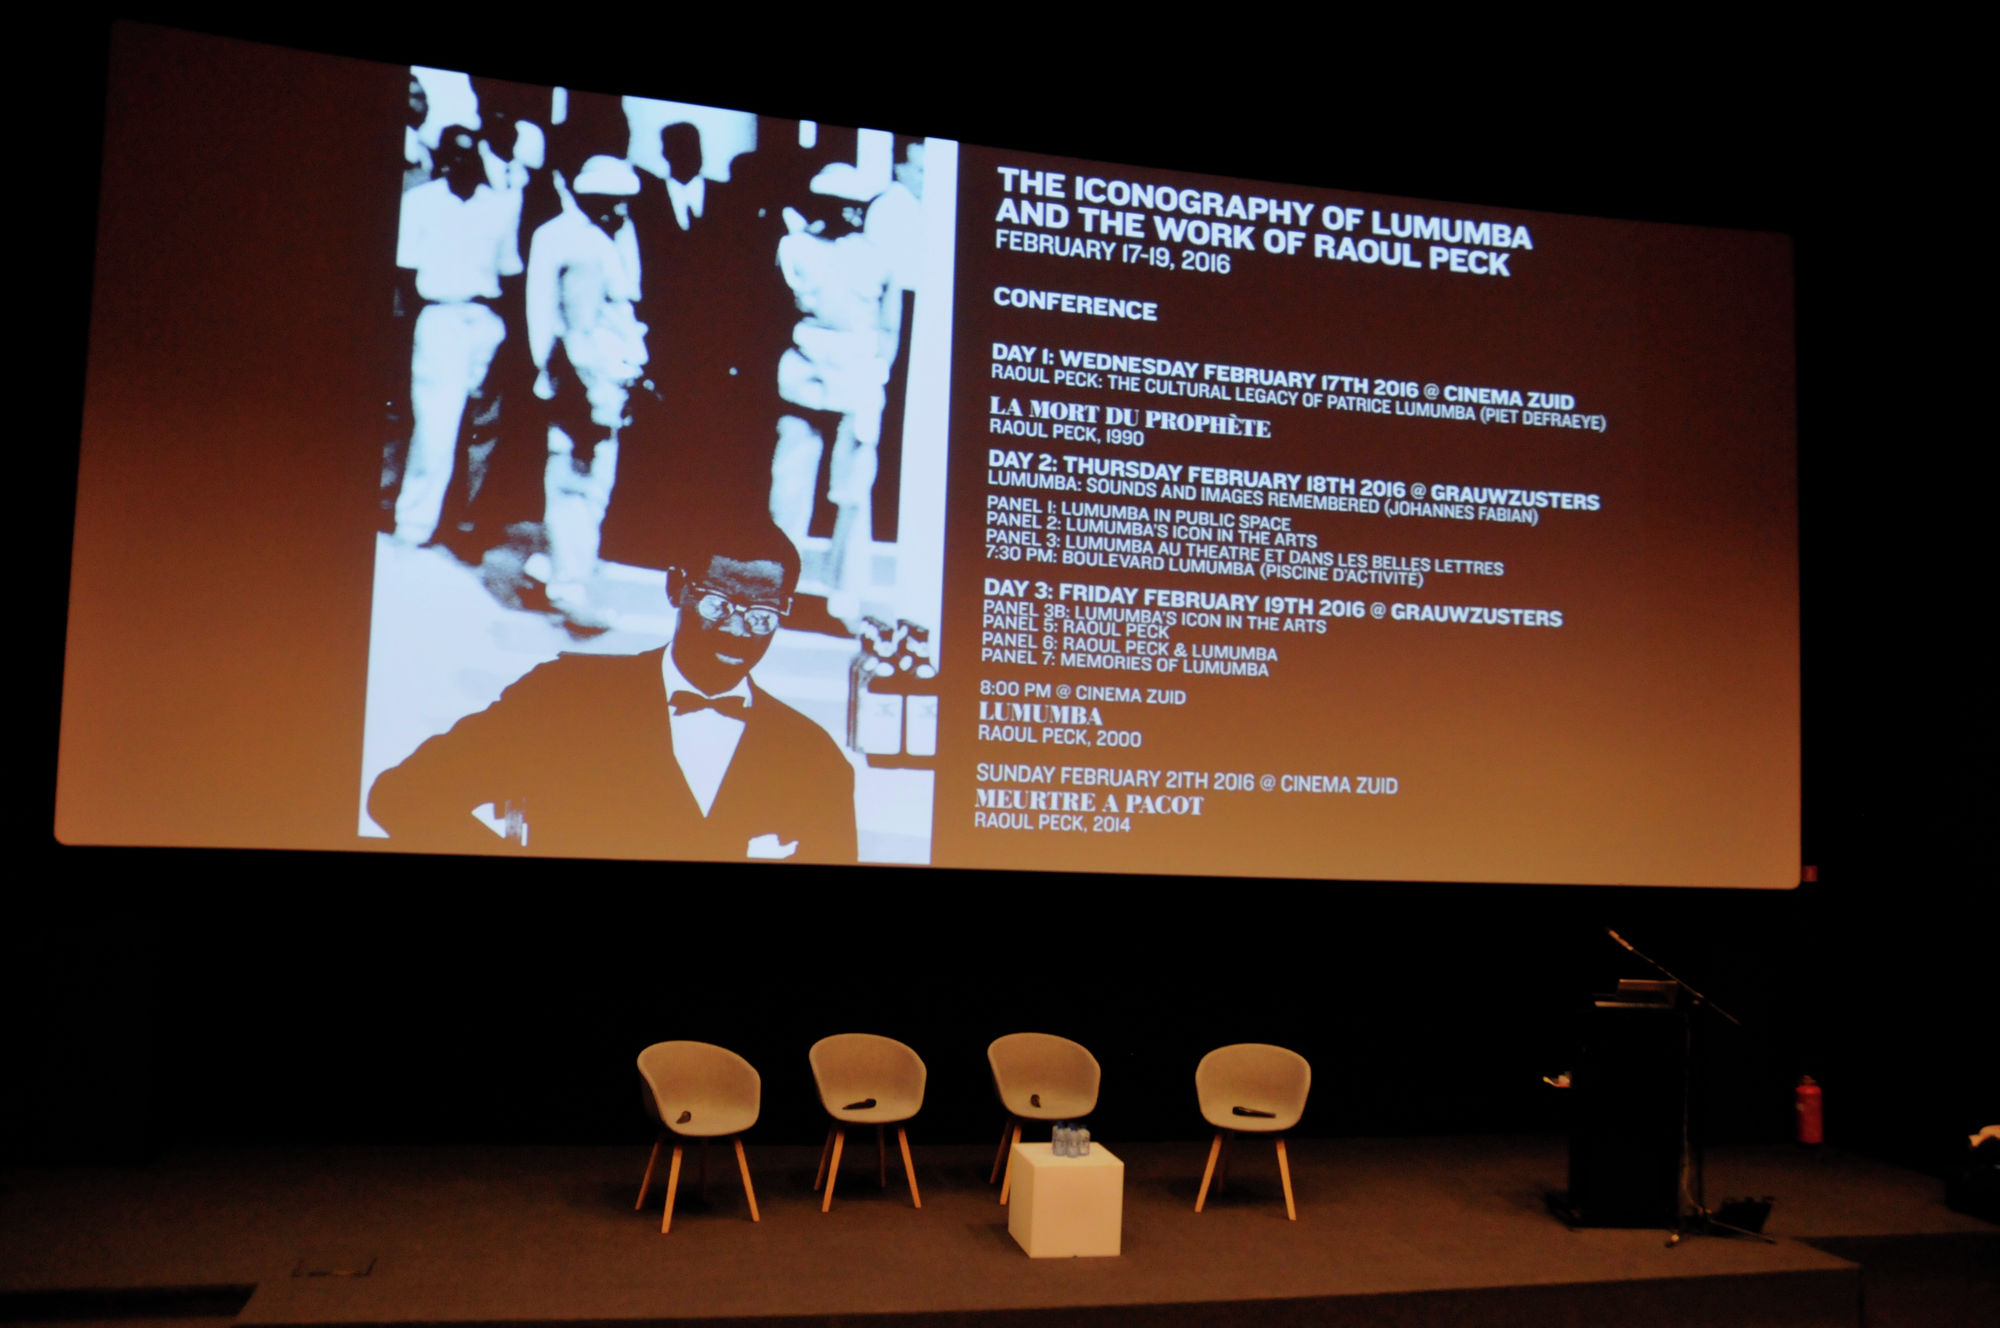 The Iconography of Lumumba and the work of Raoul Peck